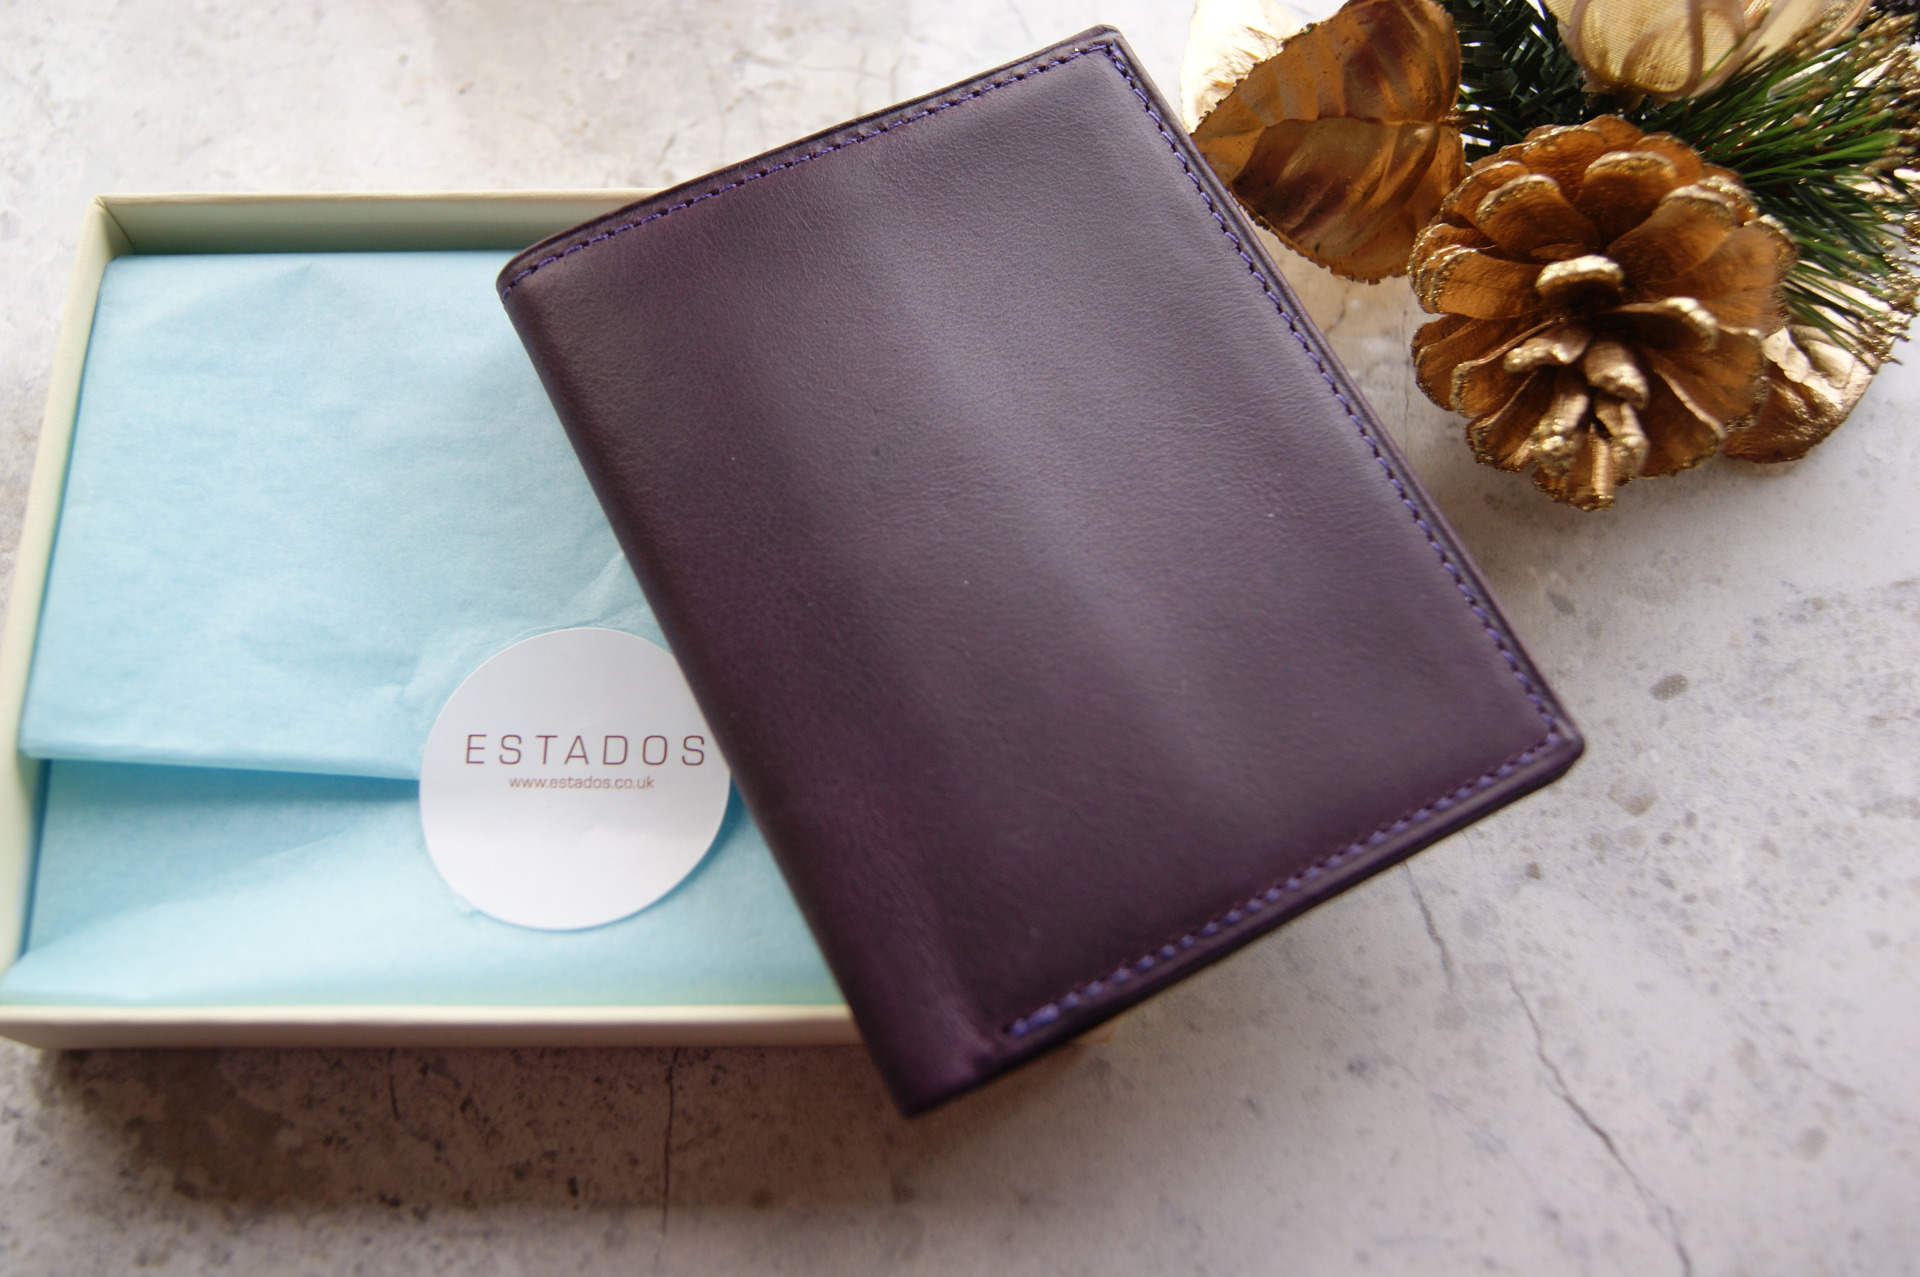 Estados - Leather Mini Wallet in Deep Purple & Pink